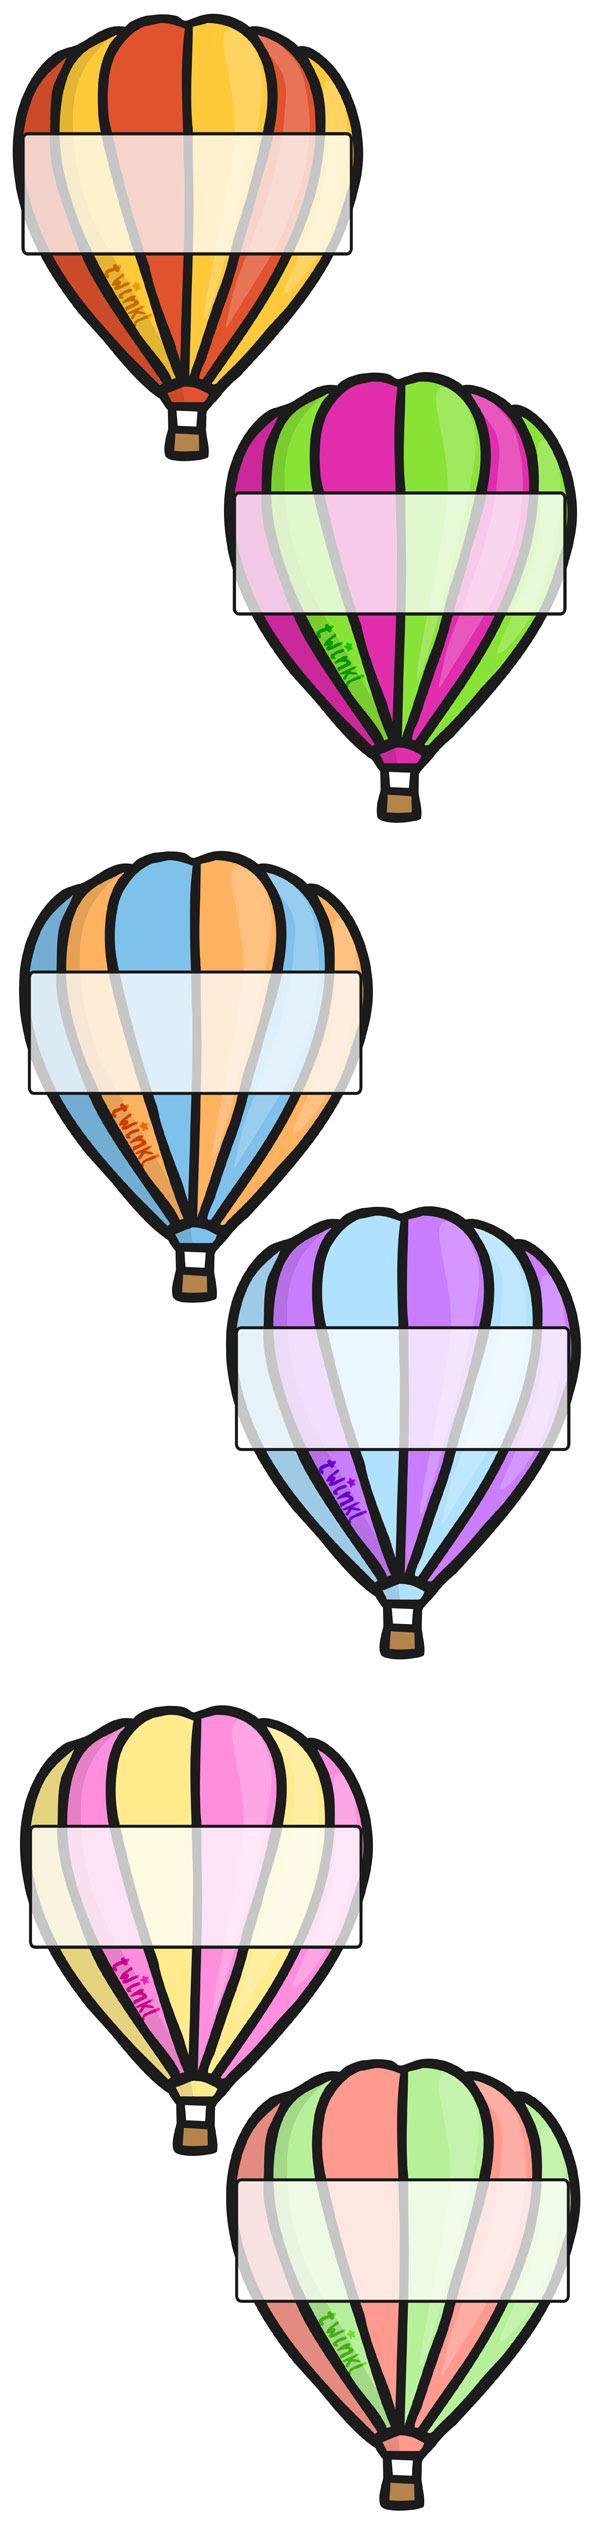 1000+ images about Balloons on Pinterest   Verb tenses, Science ...